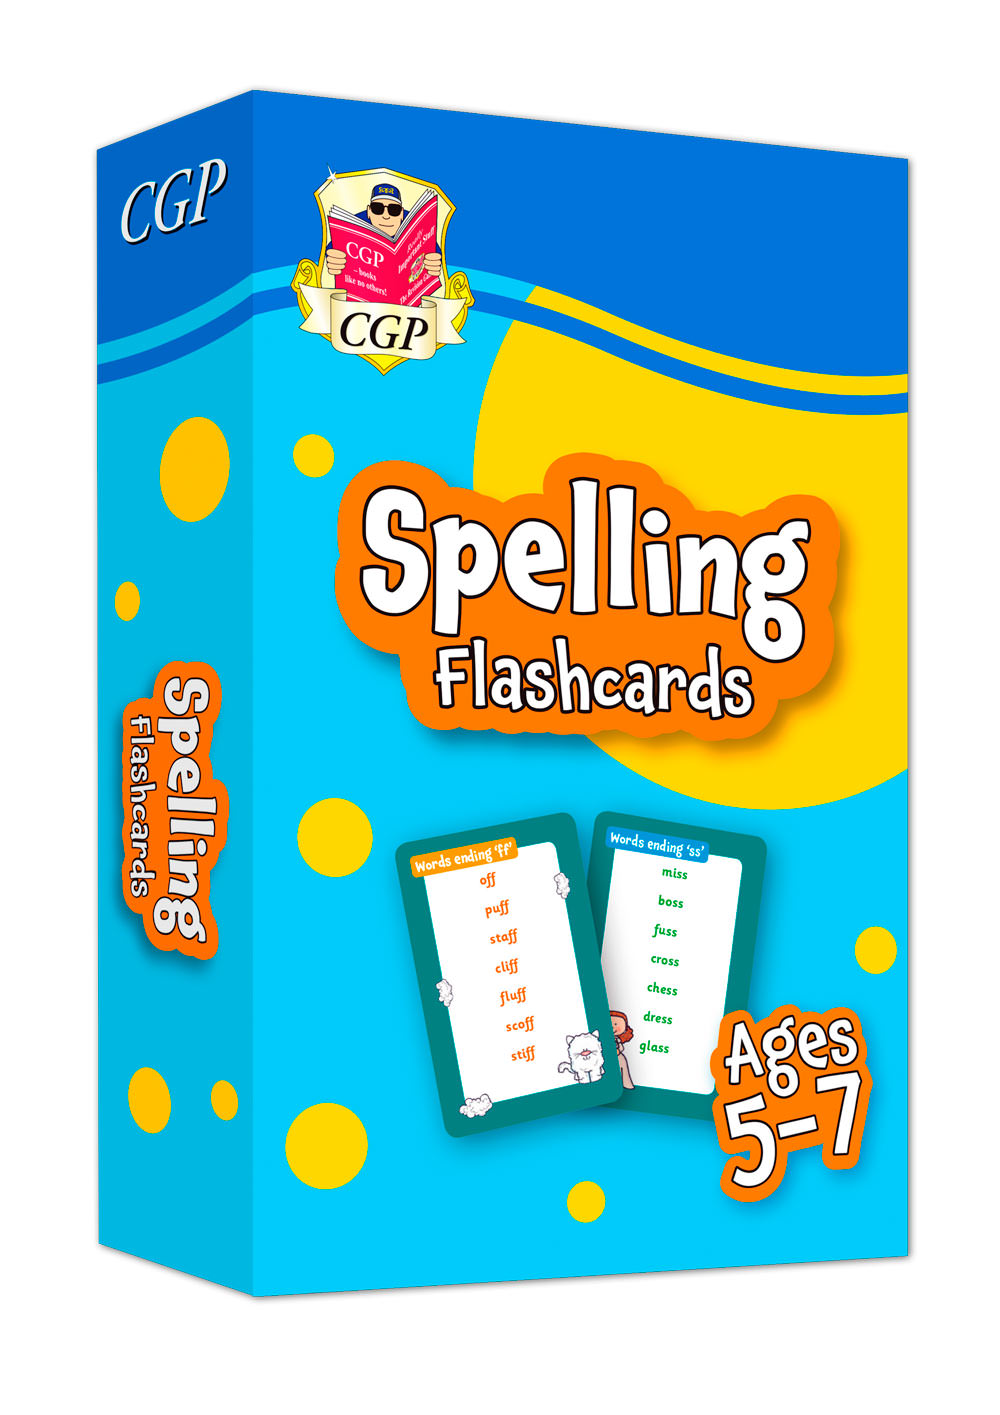 EPFSF11 - New Spelling Home Learning Flashcards for Ages 5-7